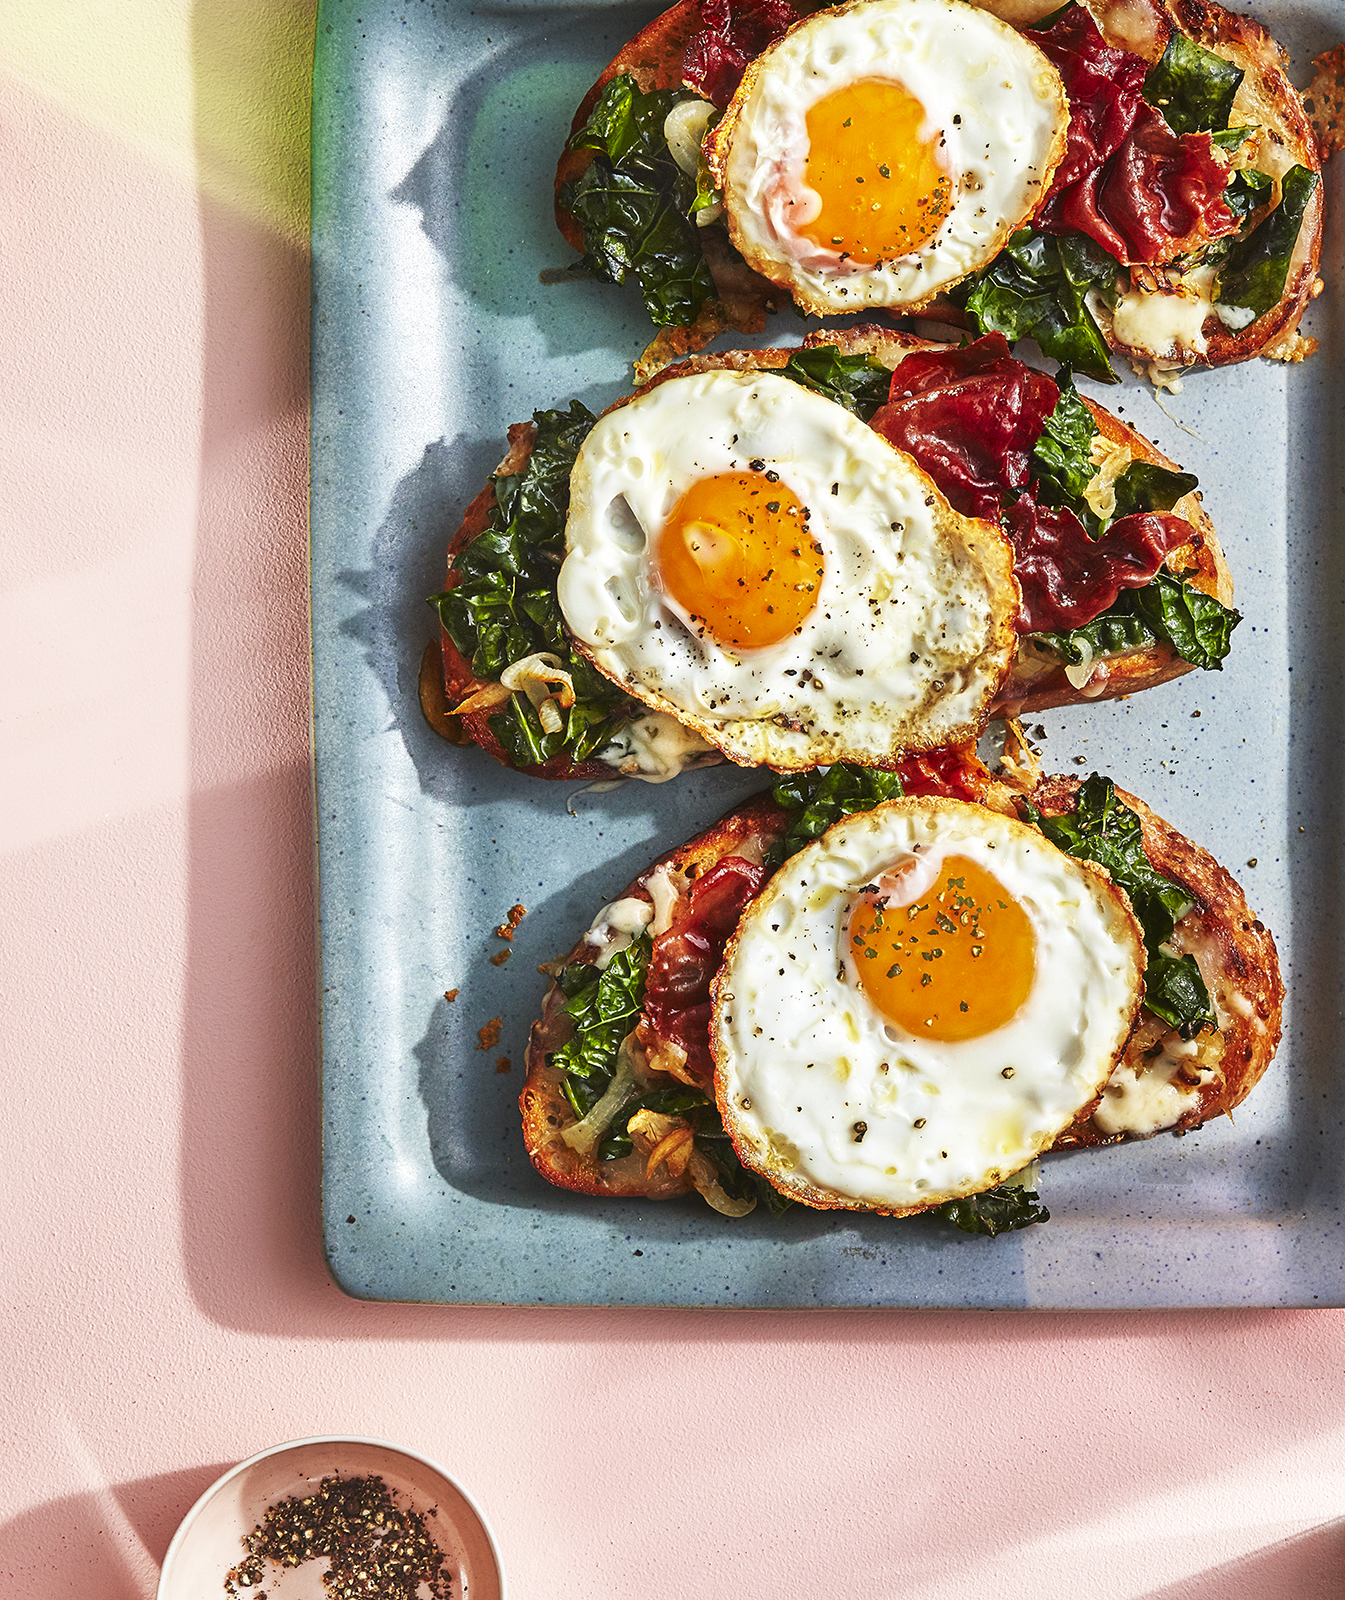 Spring Greens Tartine with Prosciutto, Fontina, and a Fried Egg